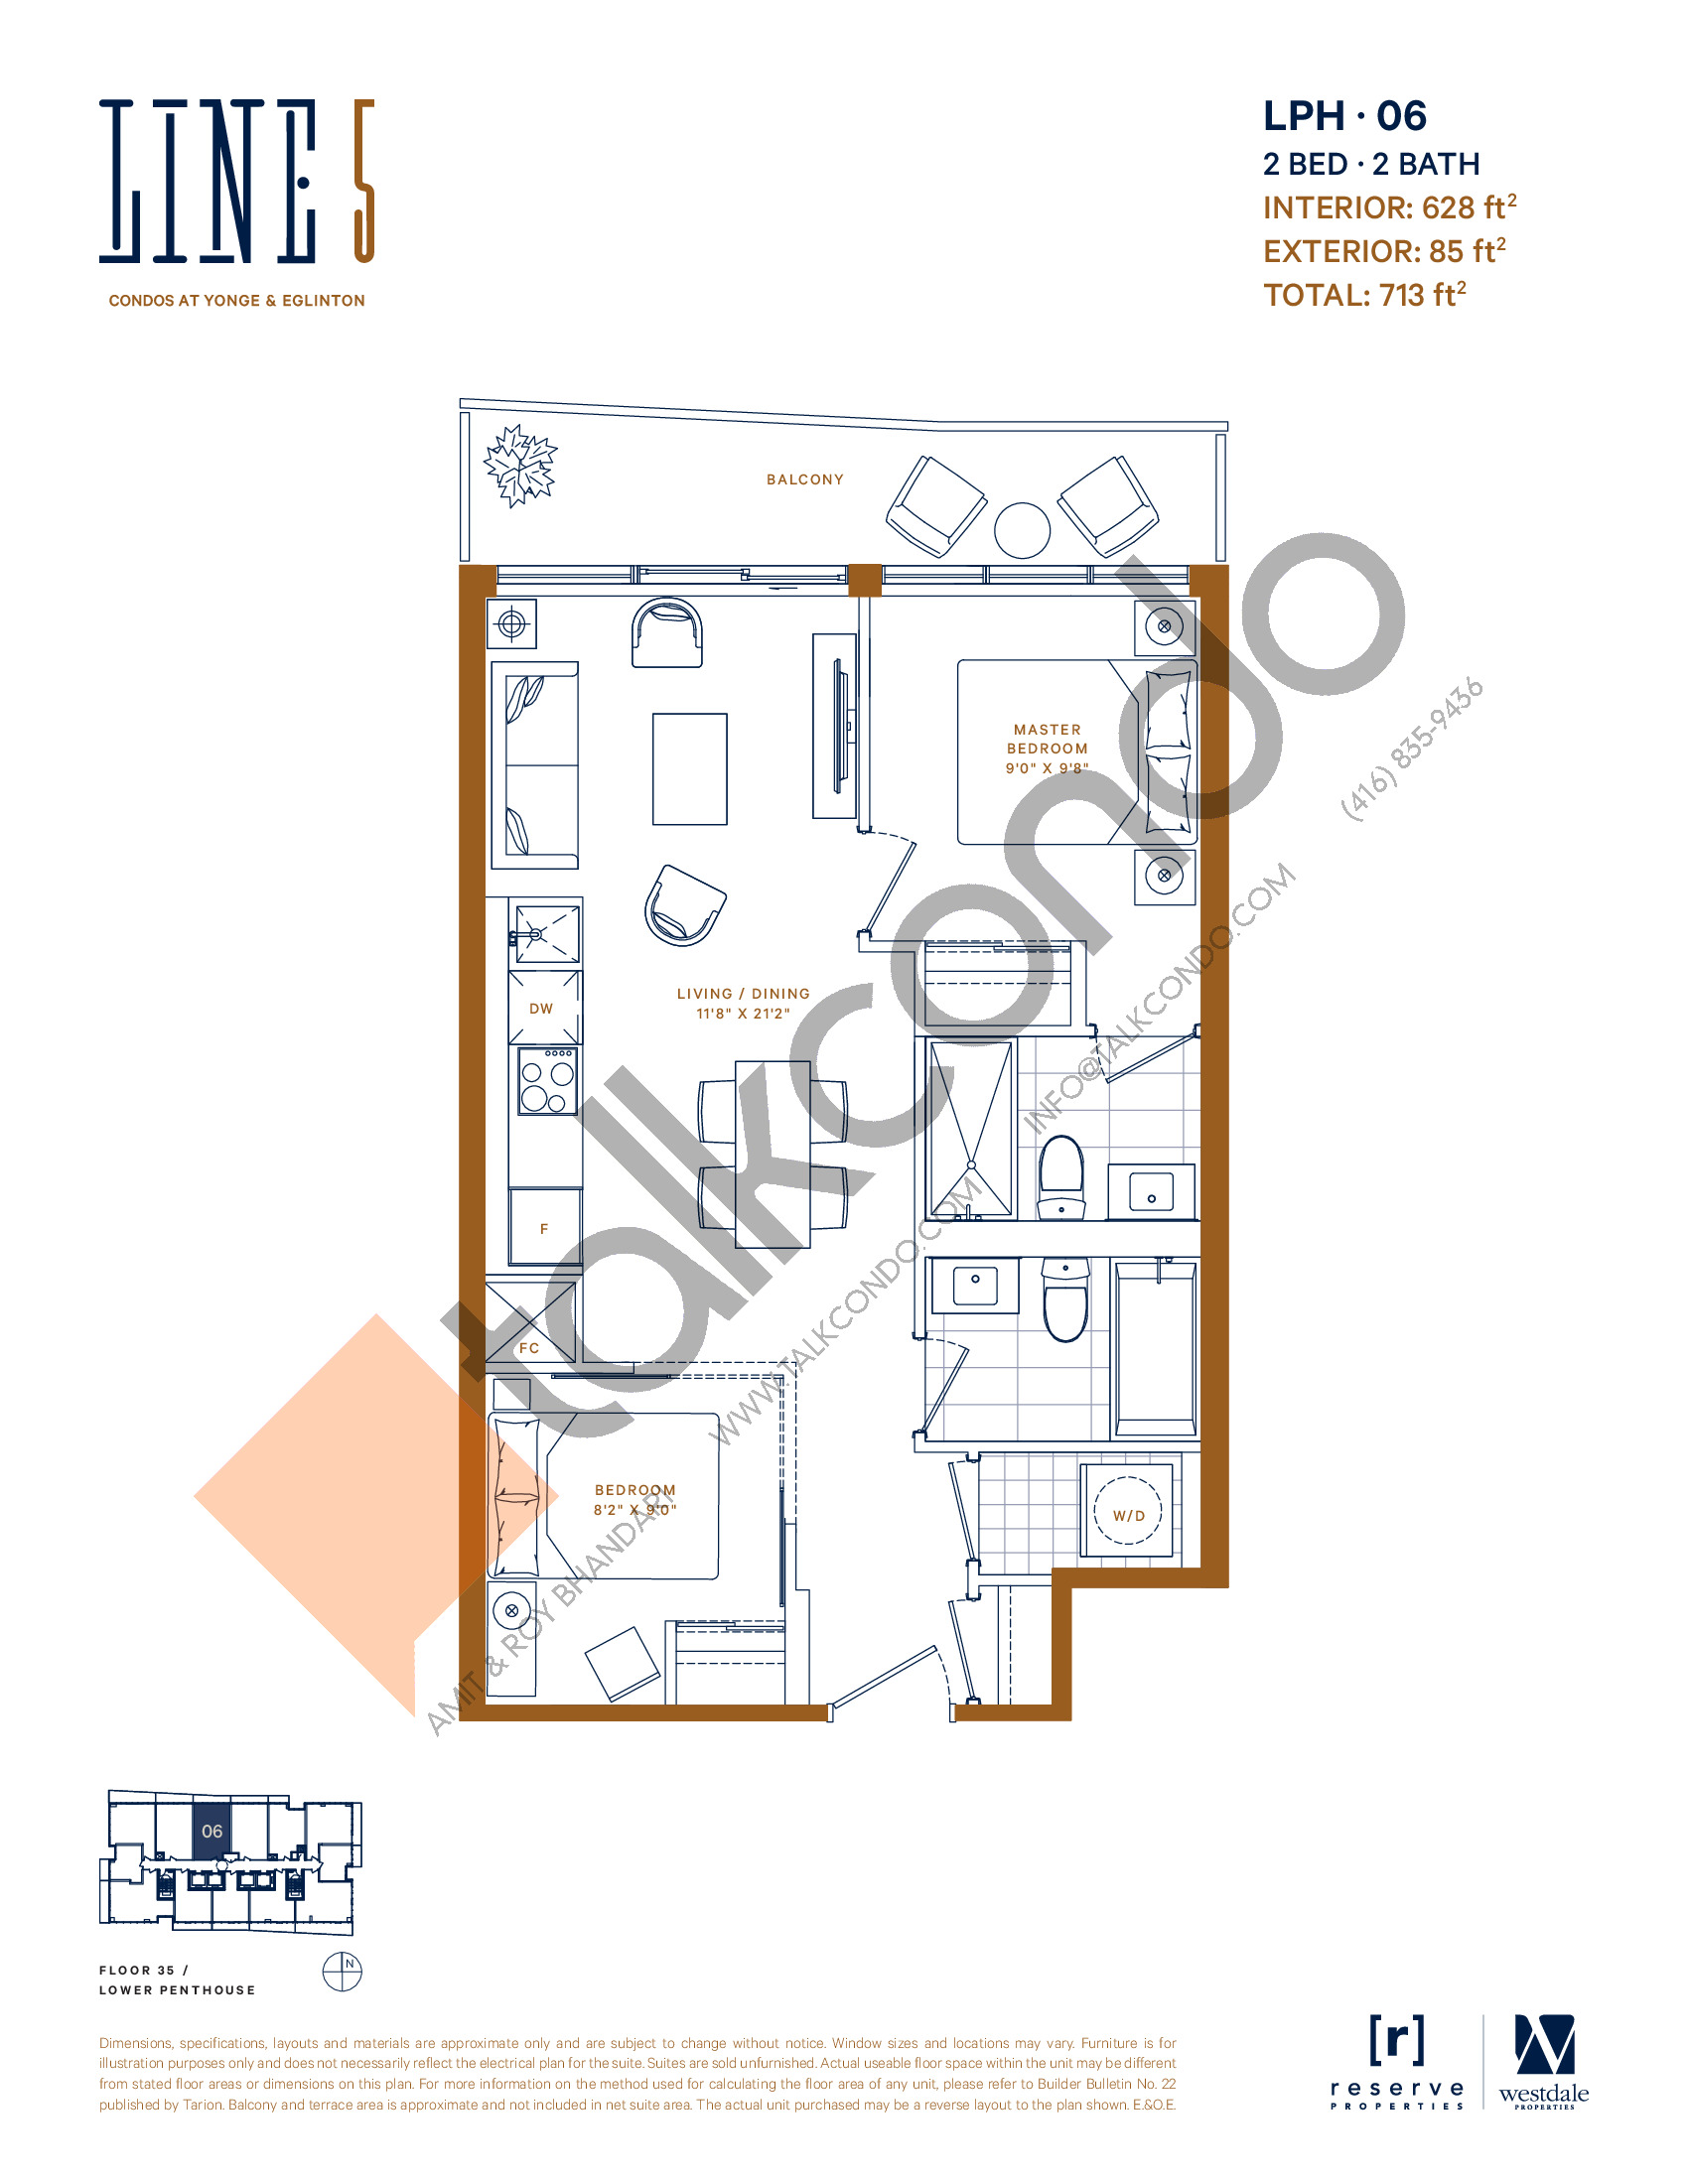 LPH-06 Floor Plan at Line 5 South Tower Condos - 628 sq.ft